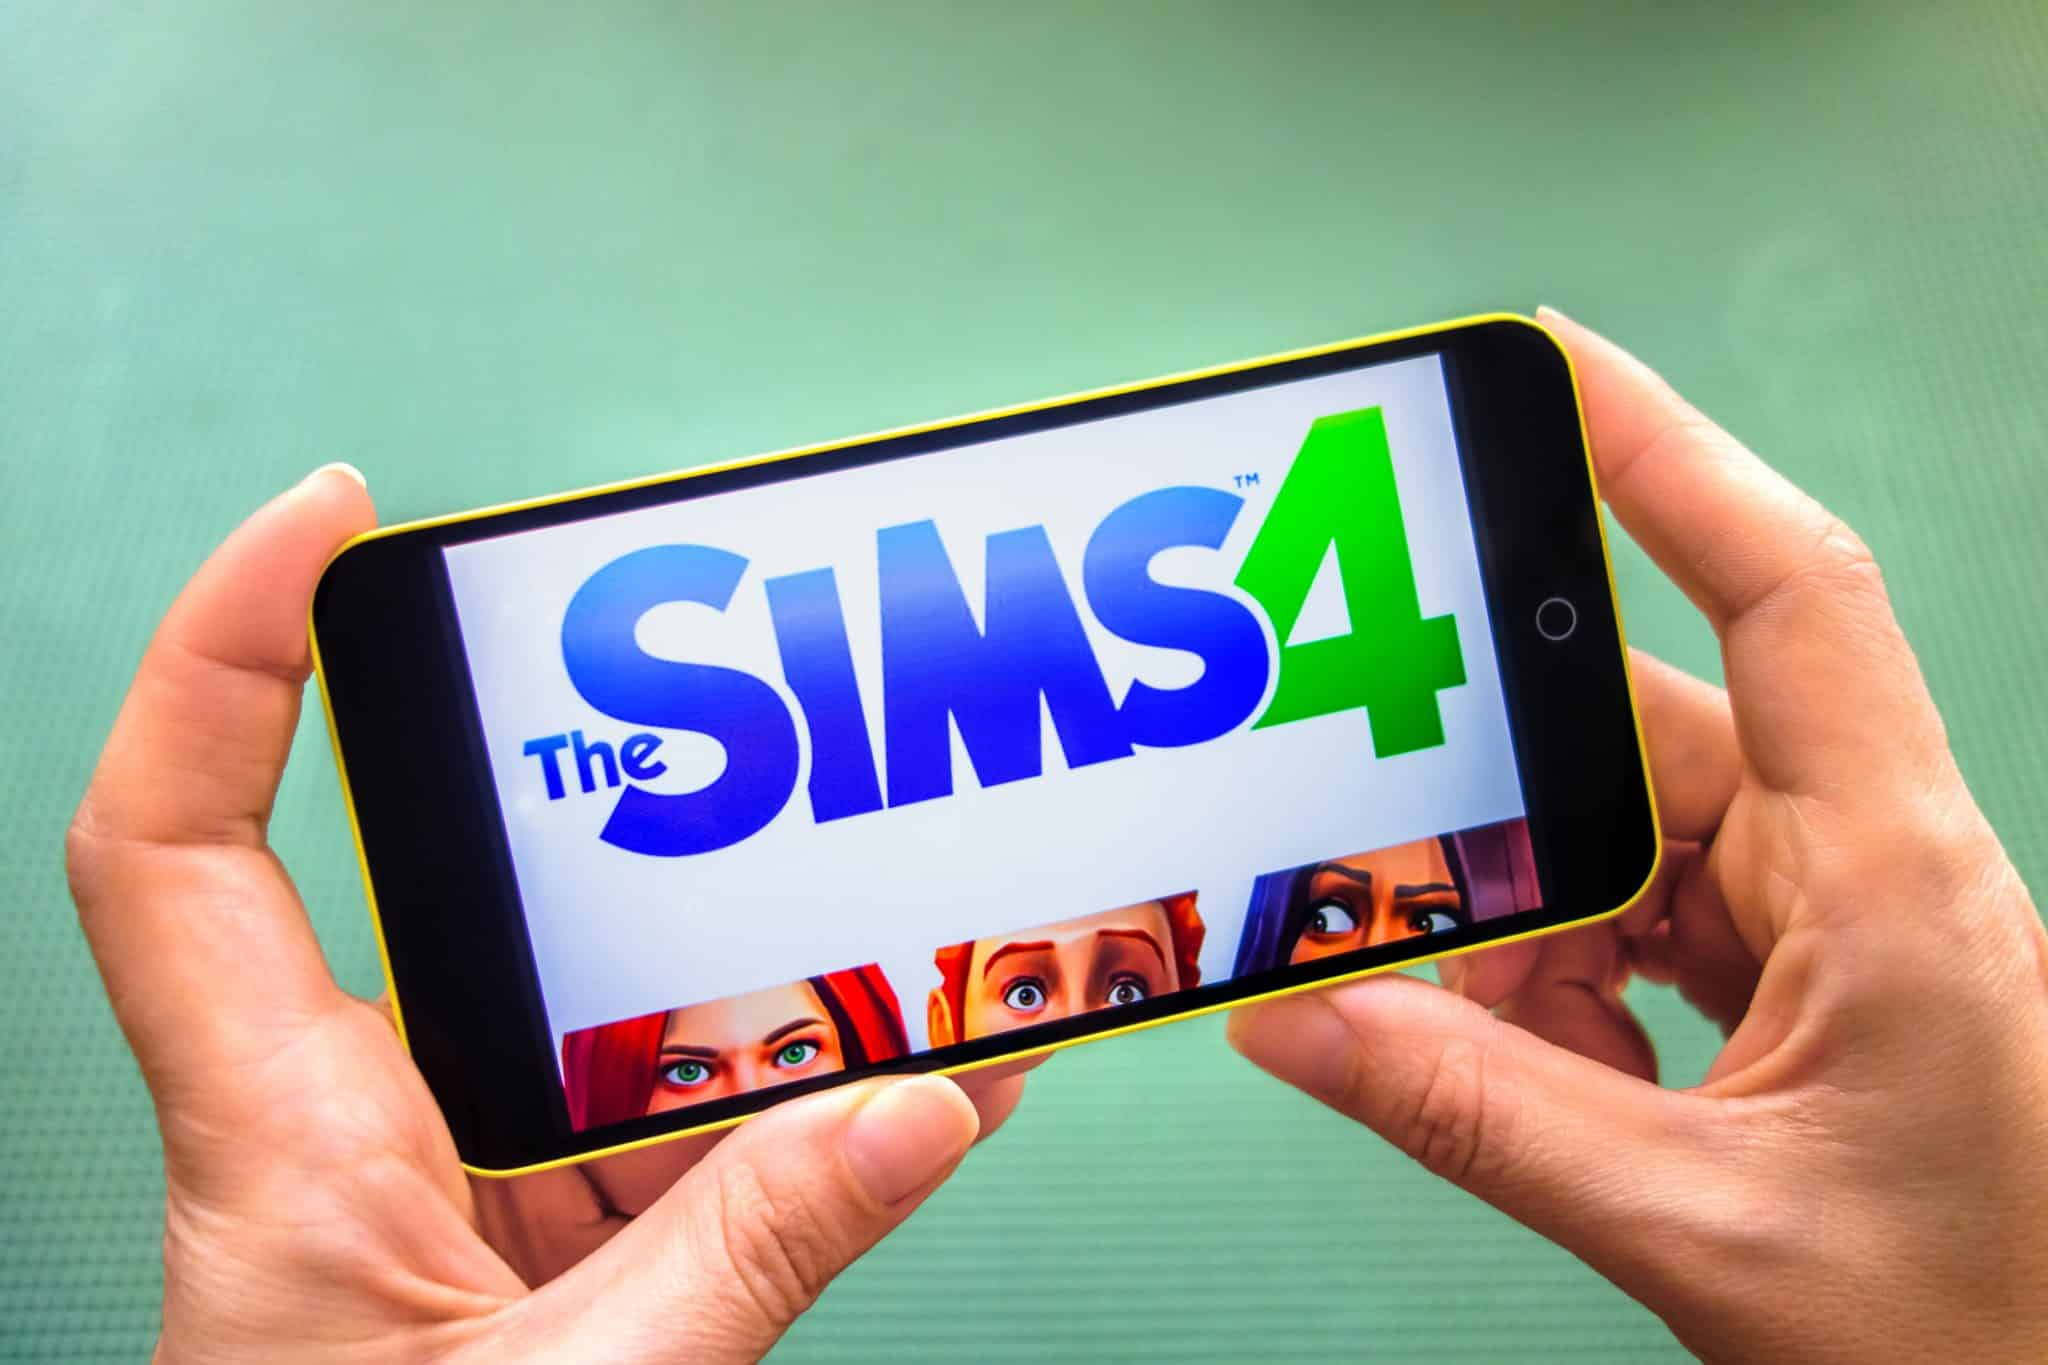 Sims 4: How to Change Traits